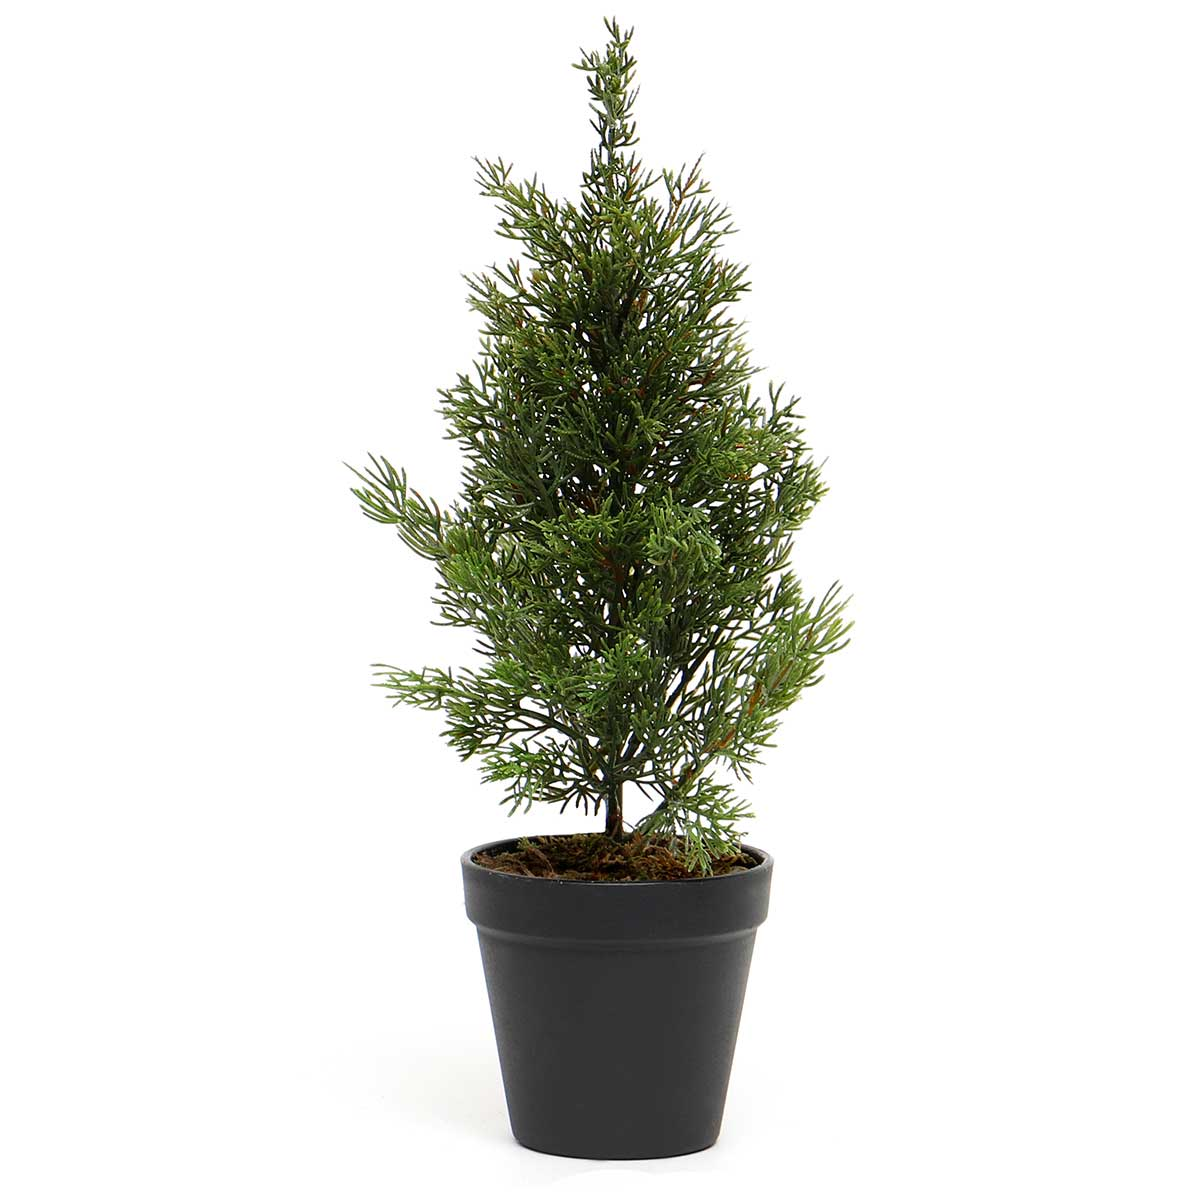 CEDAR TREE IN BLACK POT